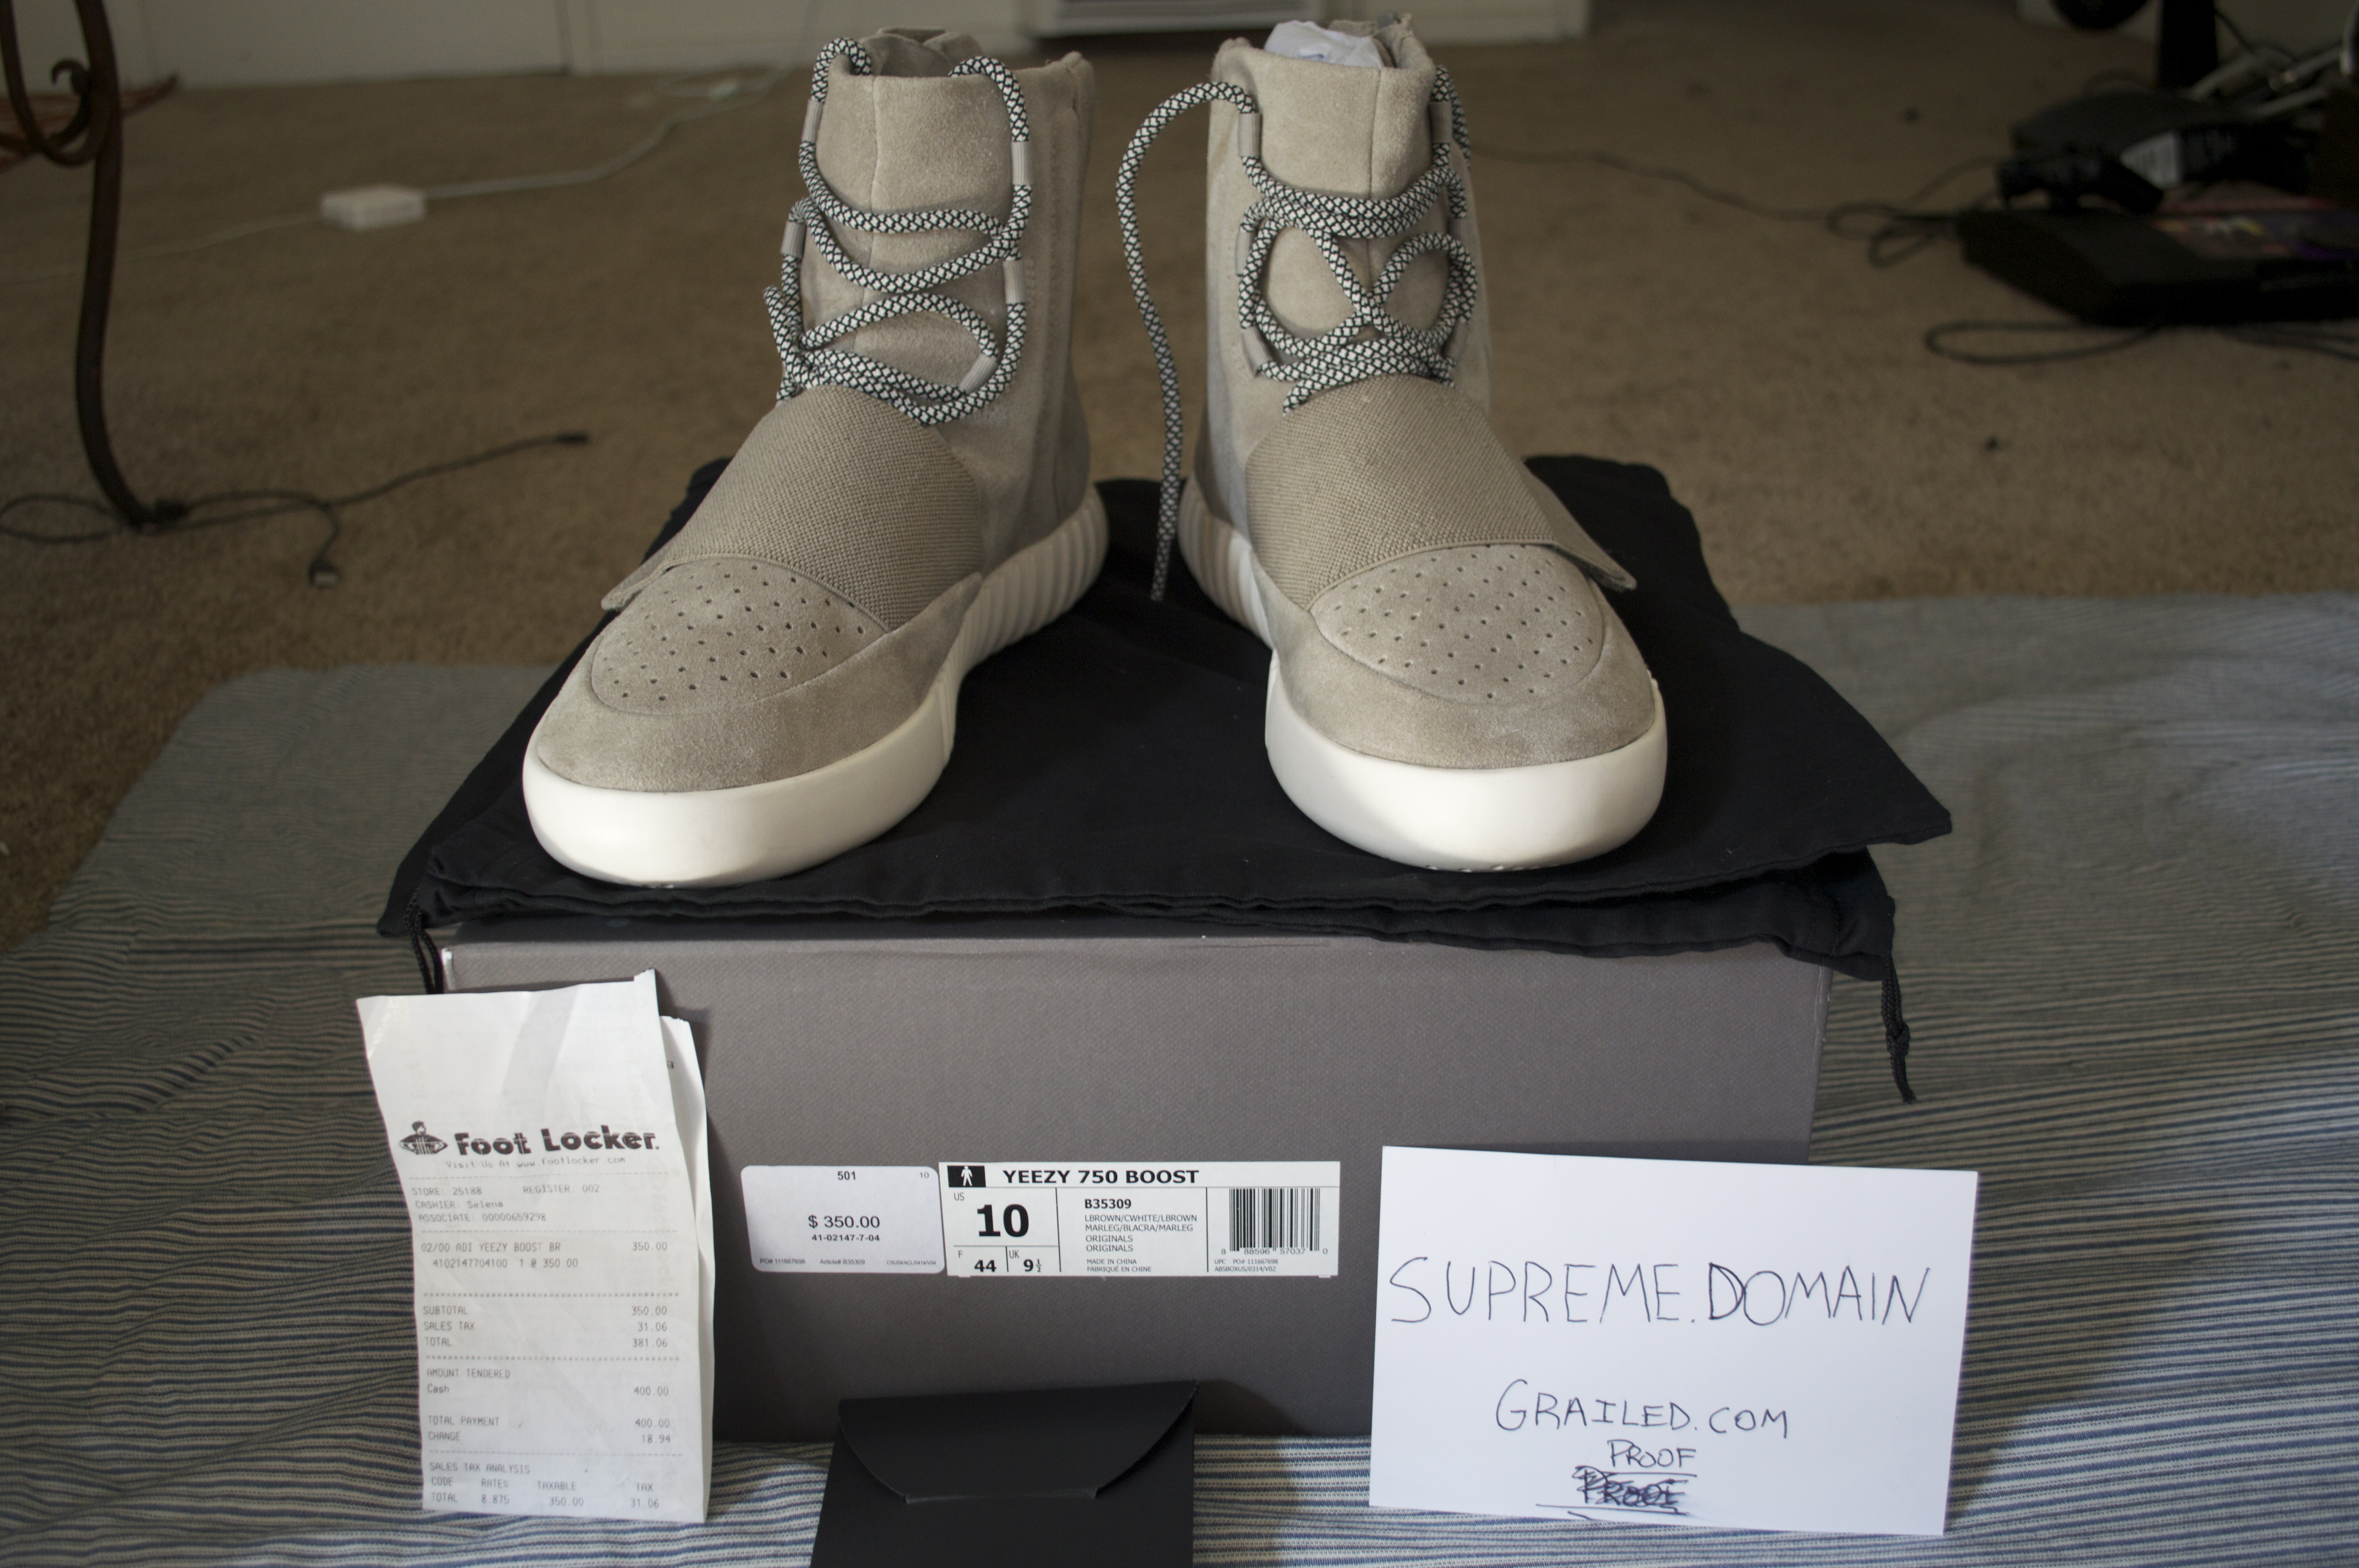 78bc58a87 Adidas Yeezy 750 Boost Size 10 - for Sale - Grailed